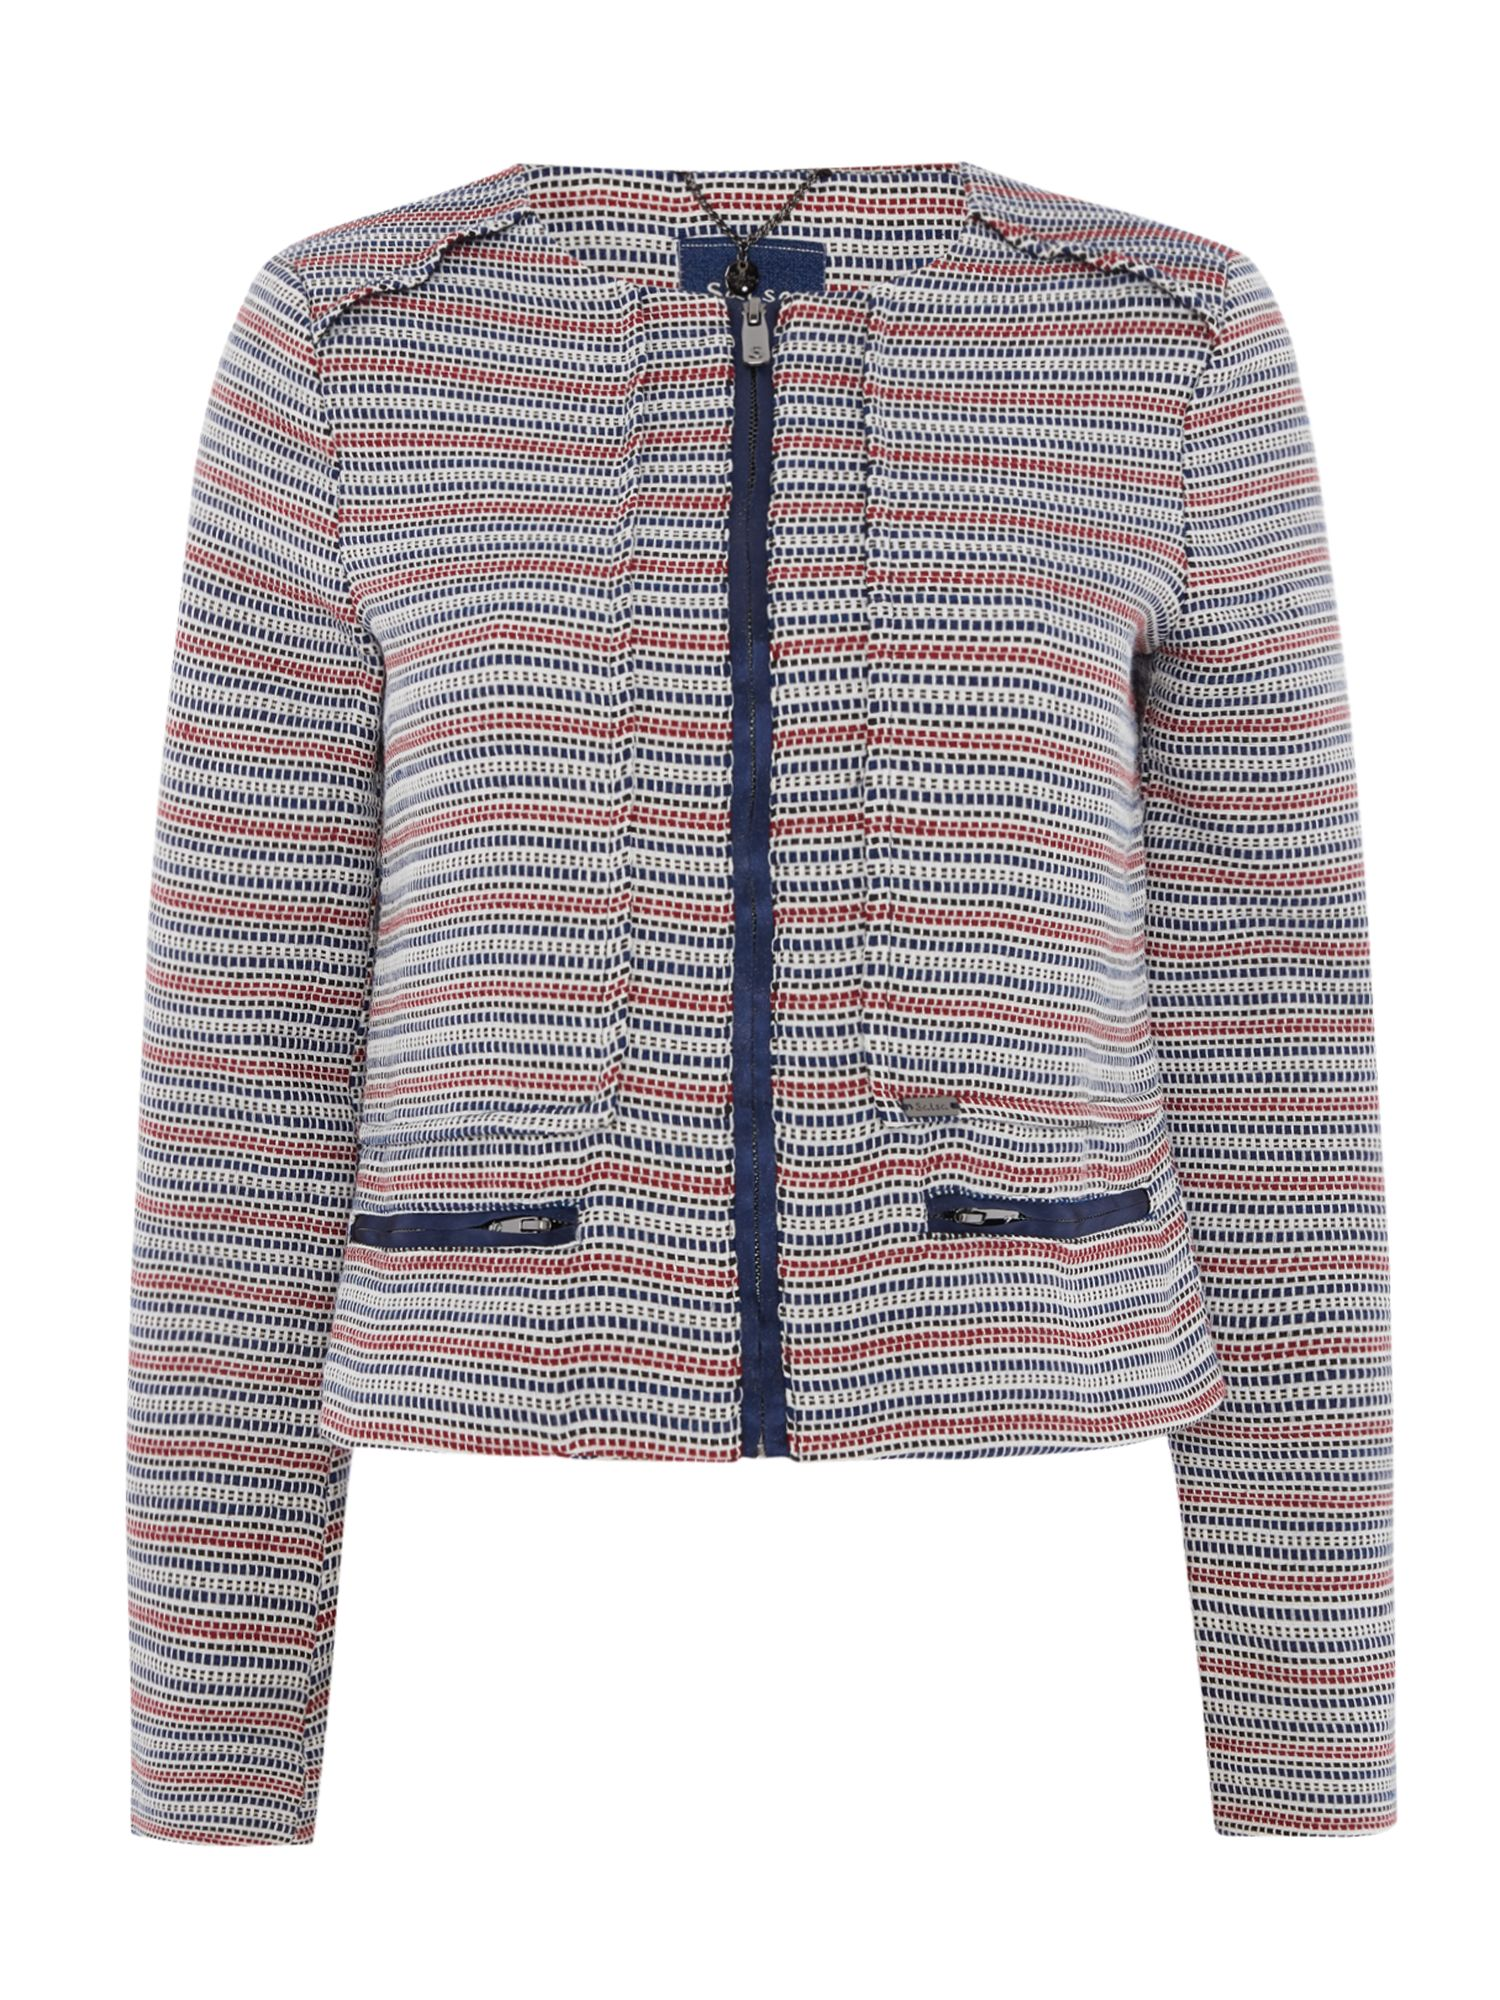 Salsa Striped Zip Up Short Fitted Jacket, Multi-Coloured